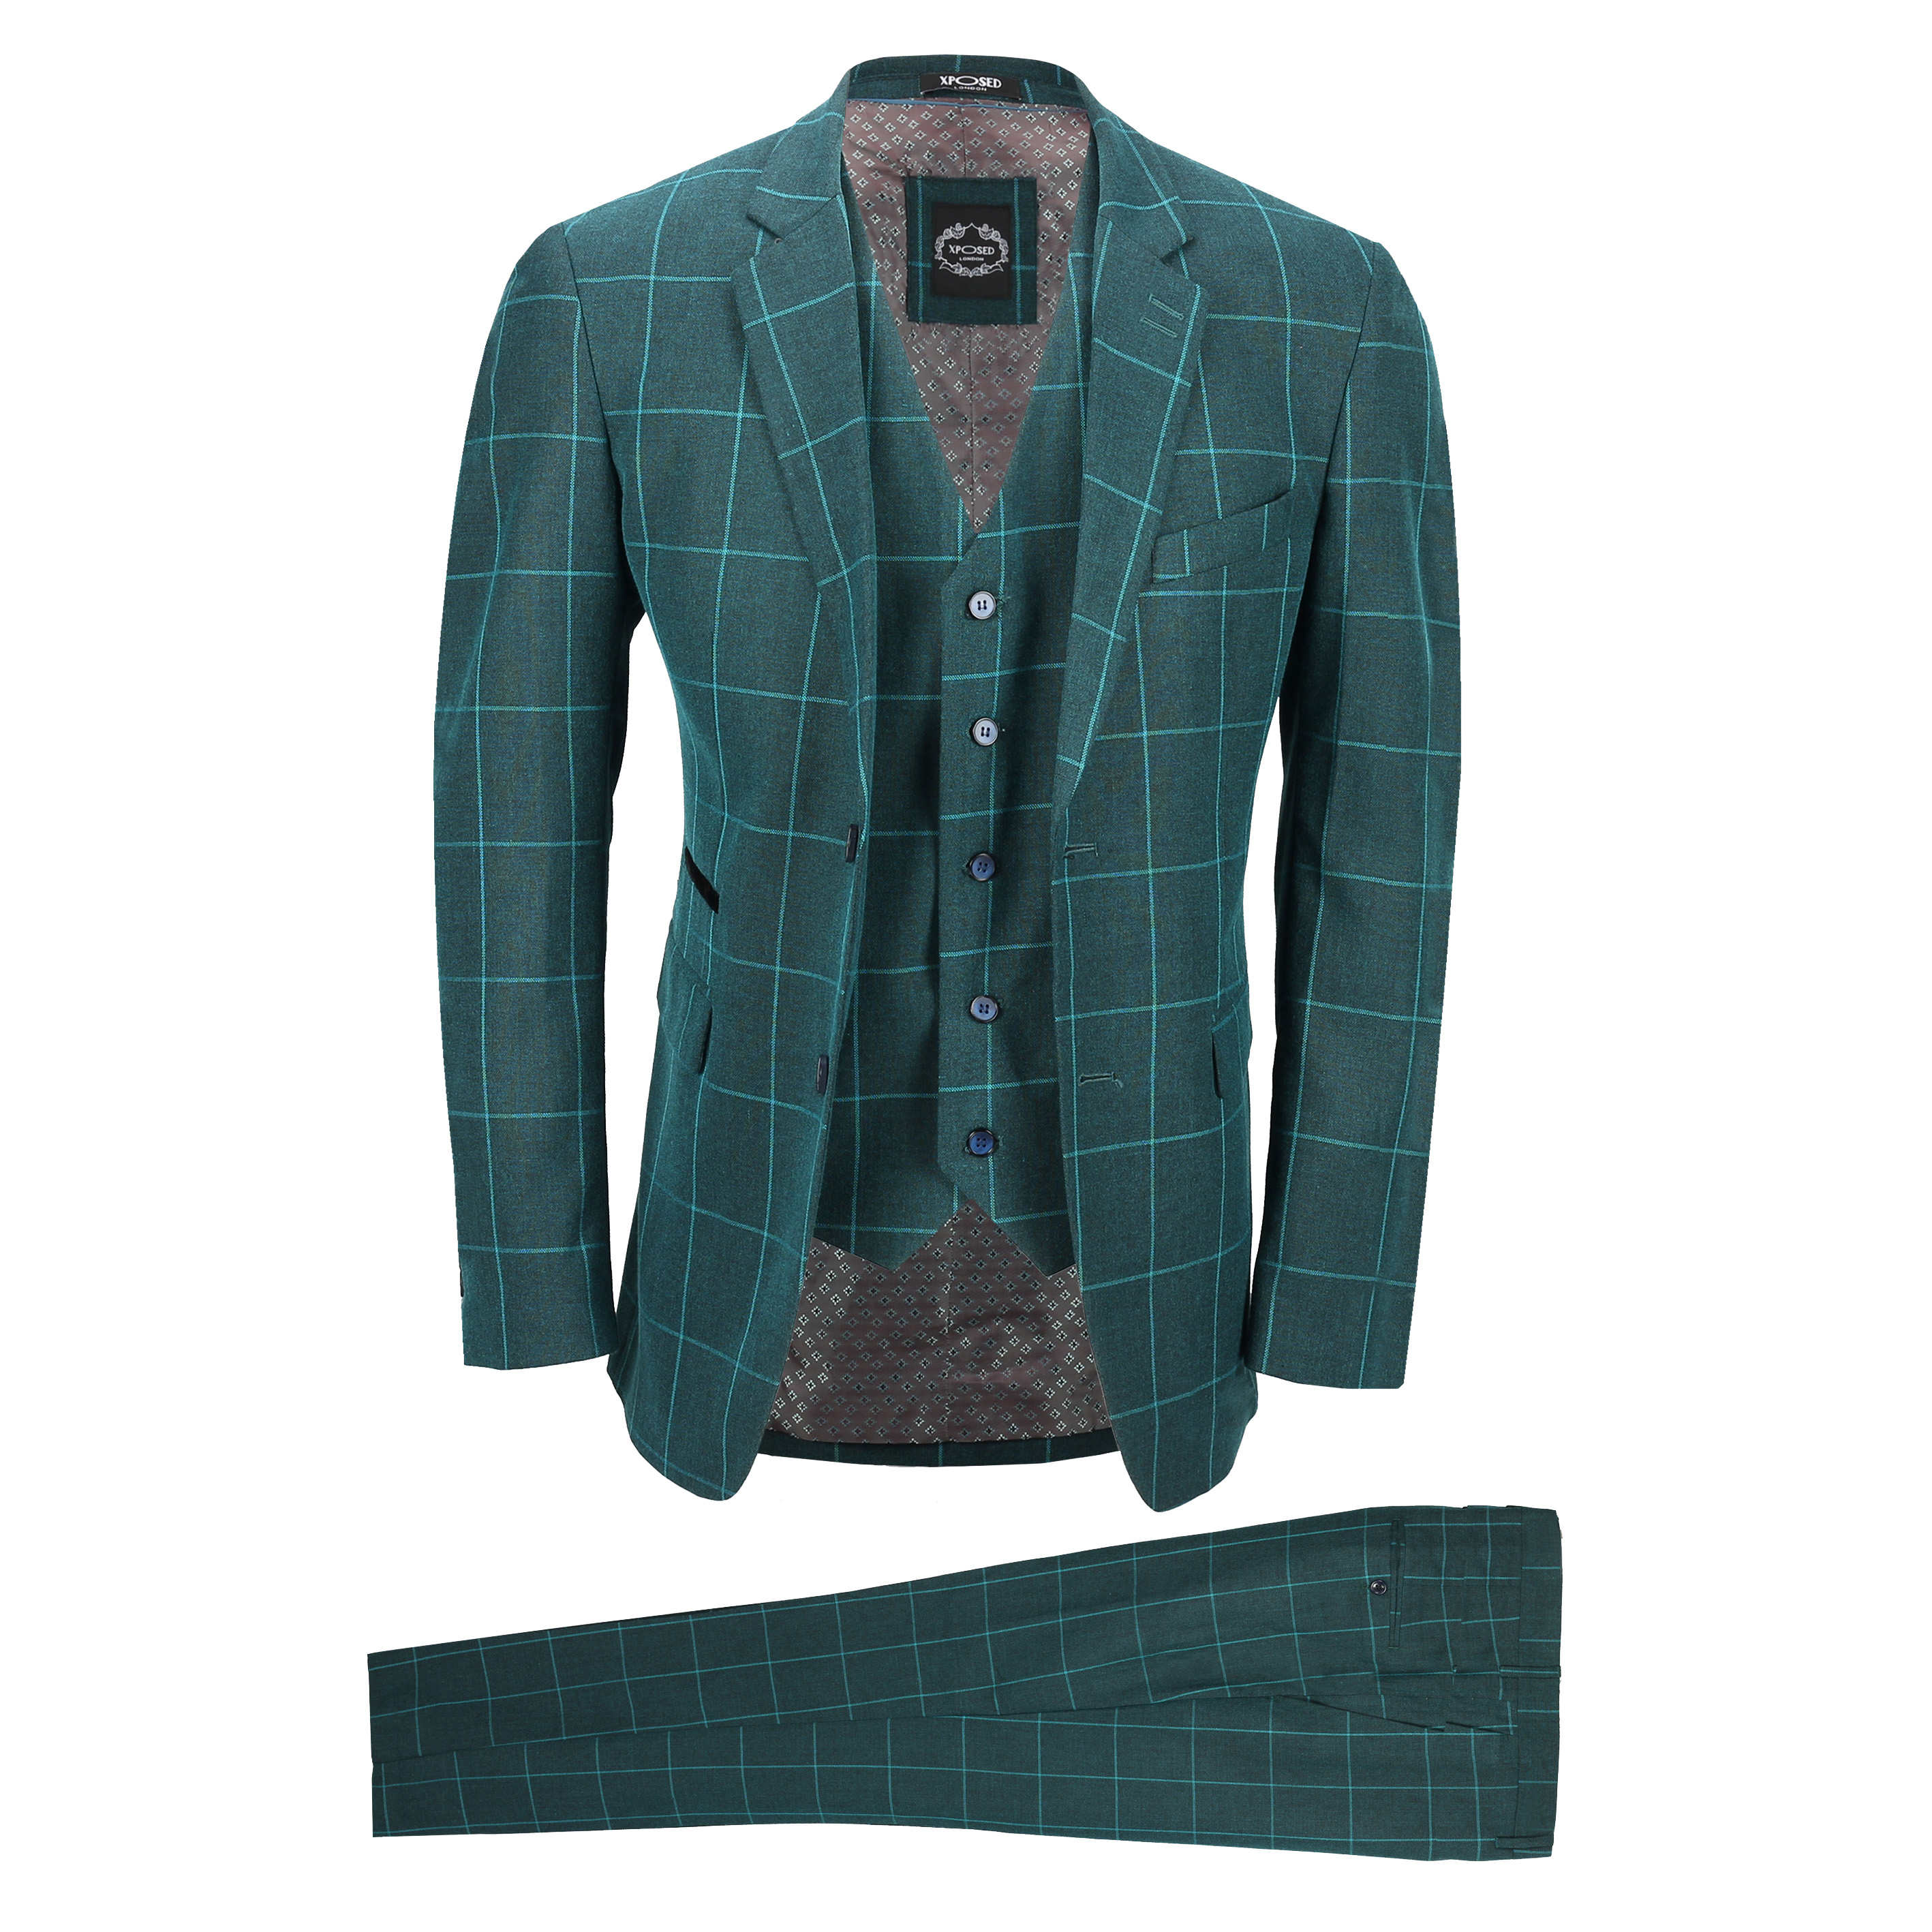 Mens 3 Piece Tweed Green Check Suit Retro Tailored Fit Blazer ...